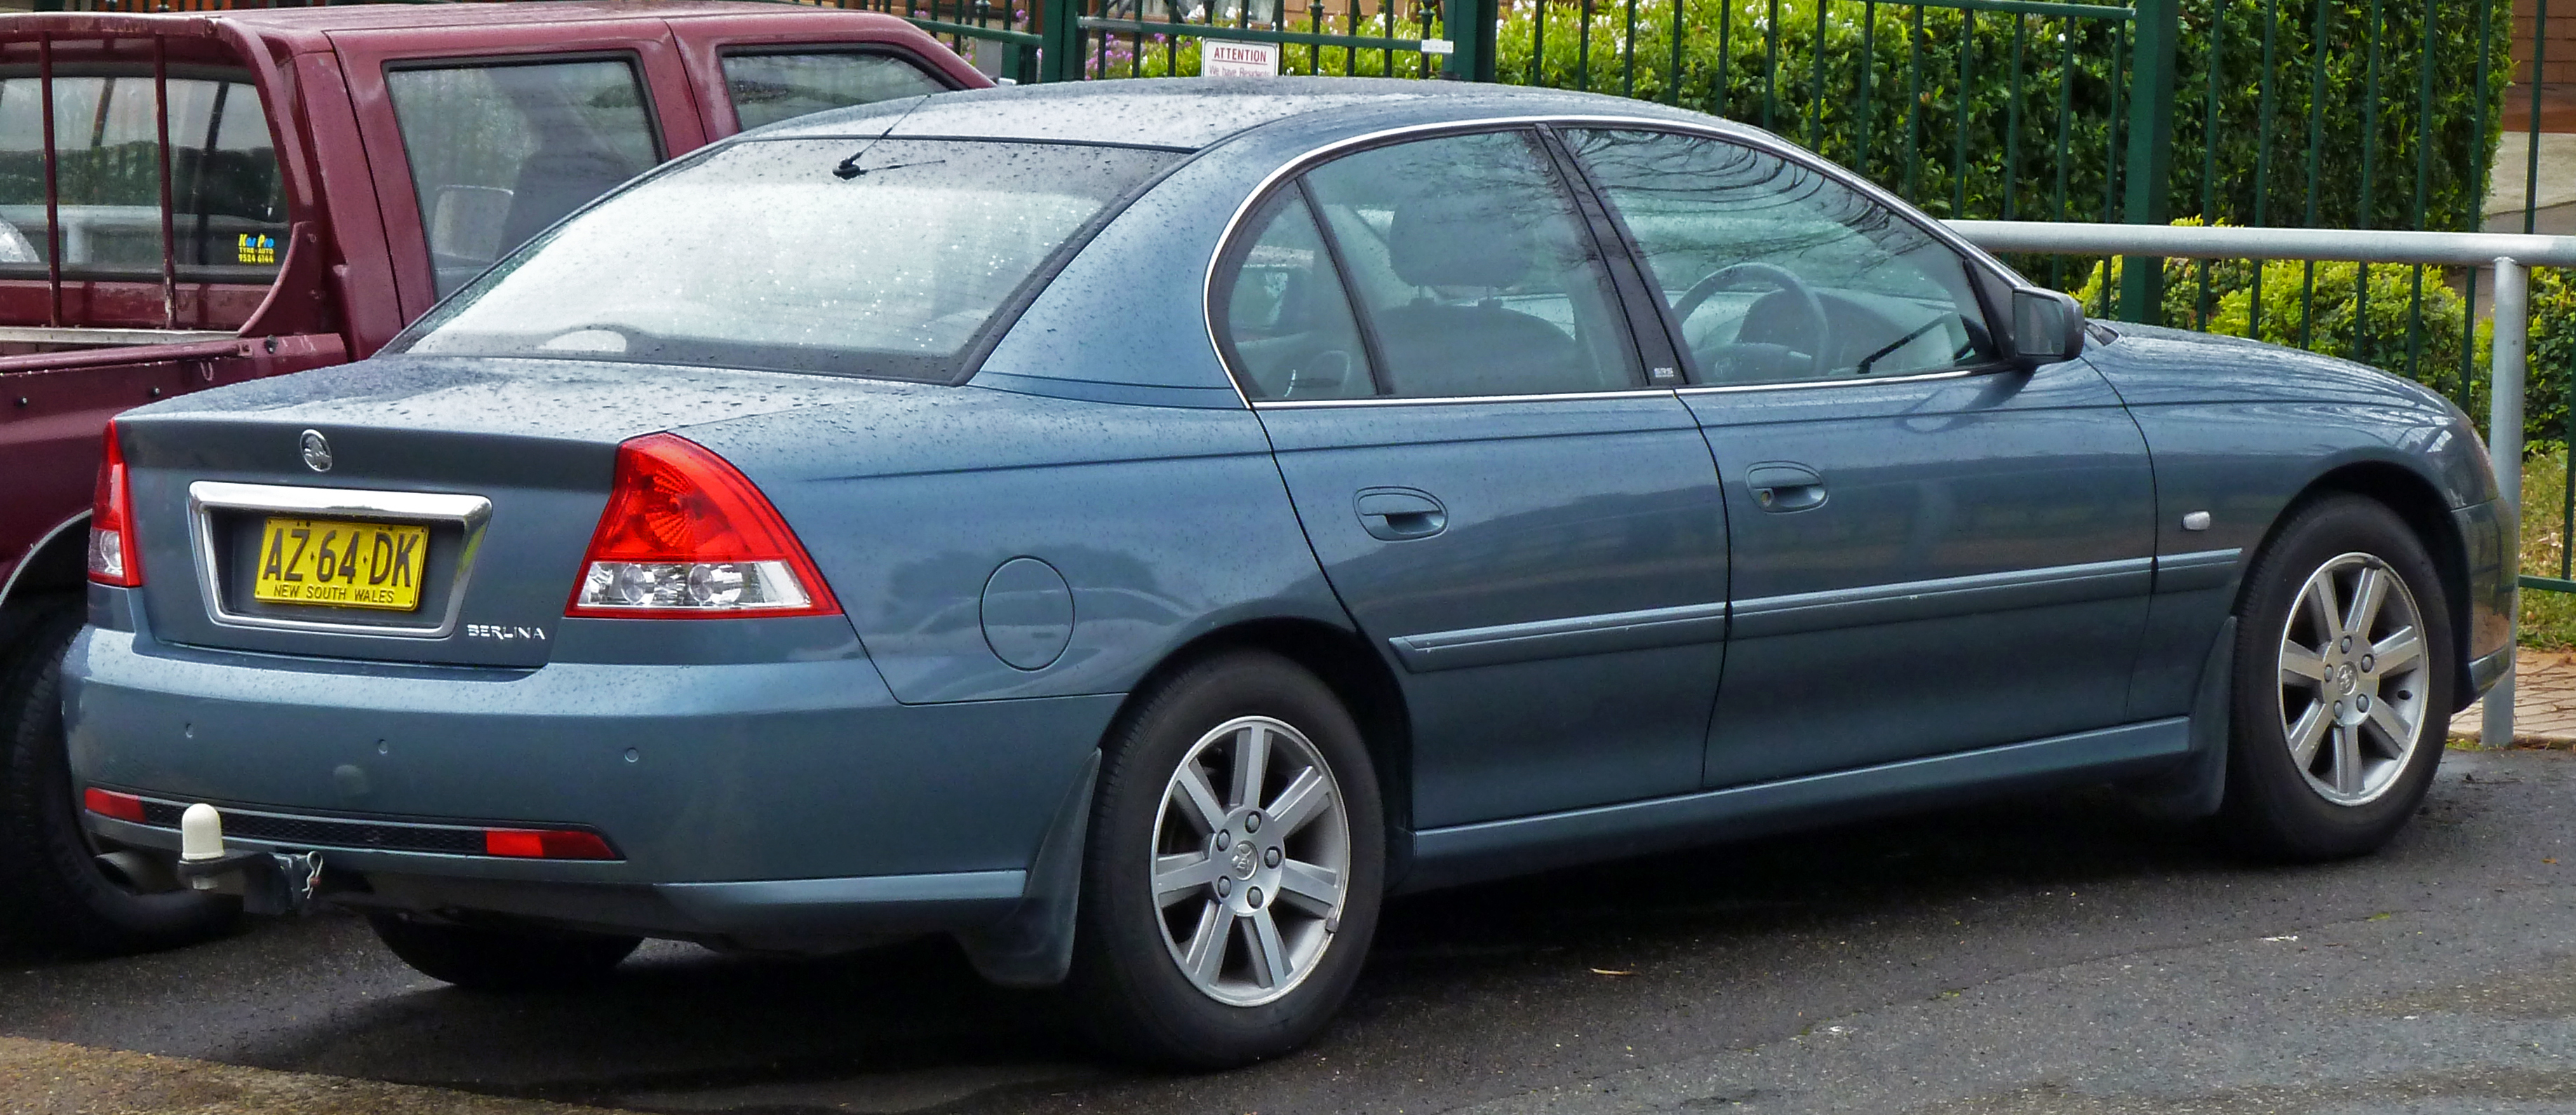 2004 Holden Berlina #7